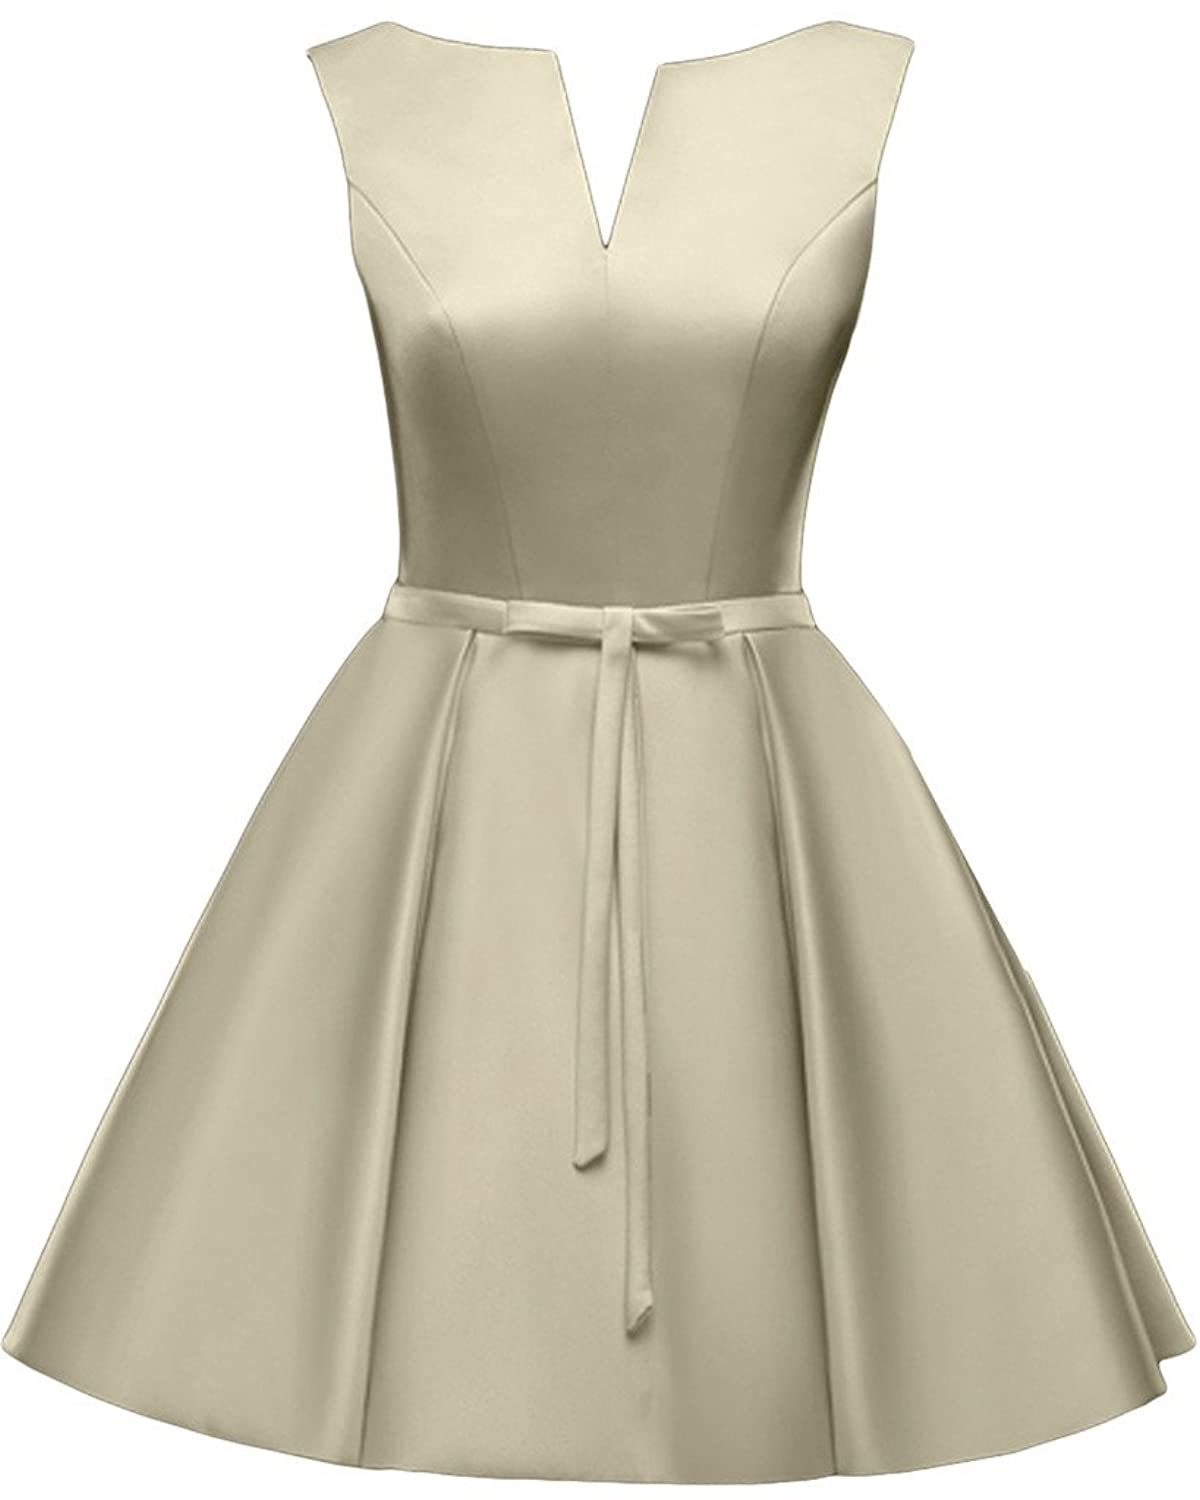 Ivydressing Chic V-neck Homecoming Gowns Lace-up Short Prom Cocktail Dresses